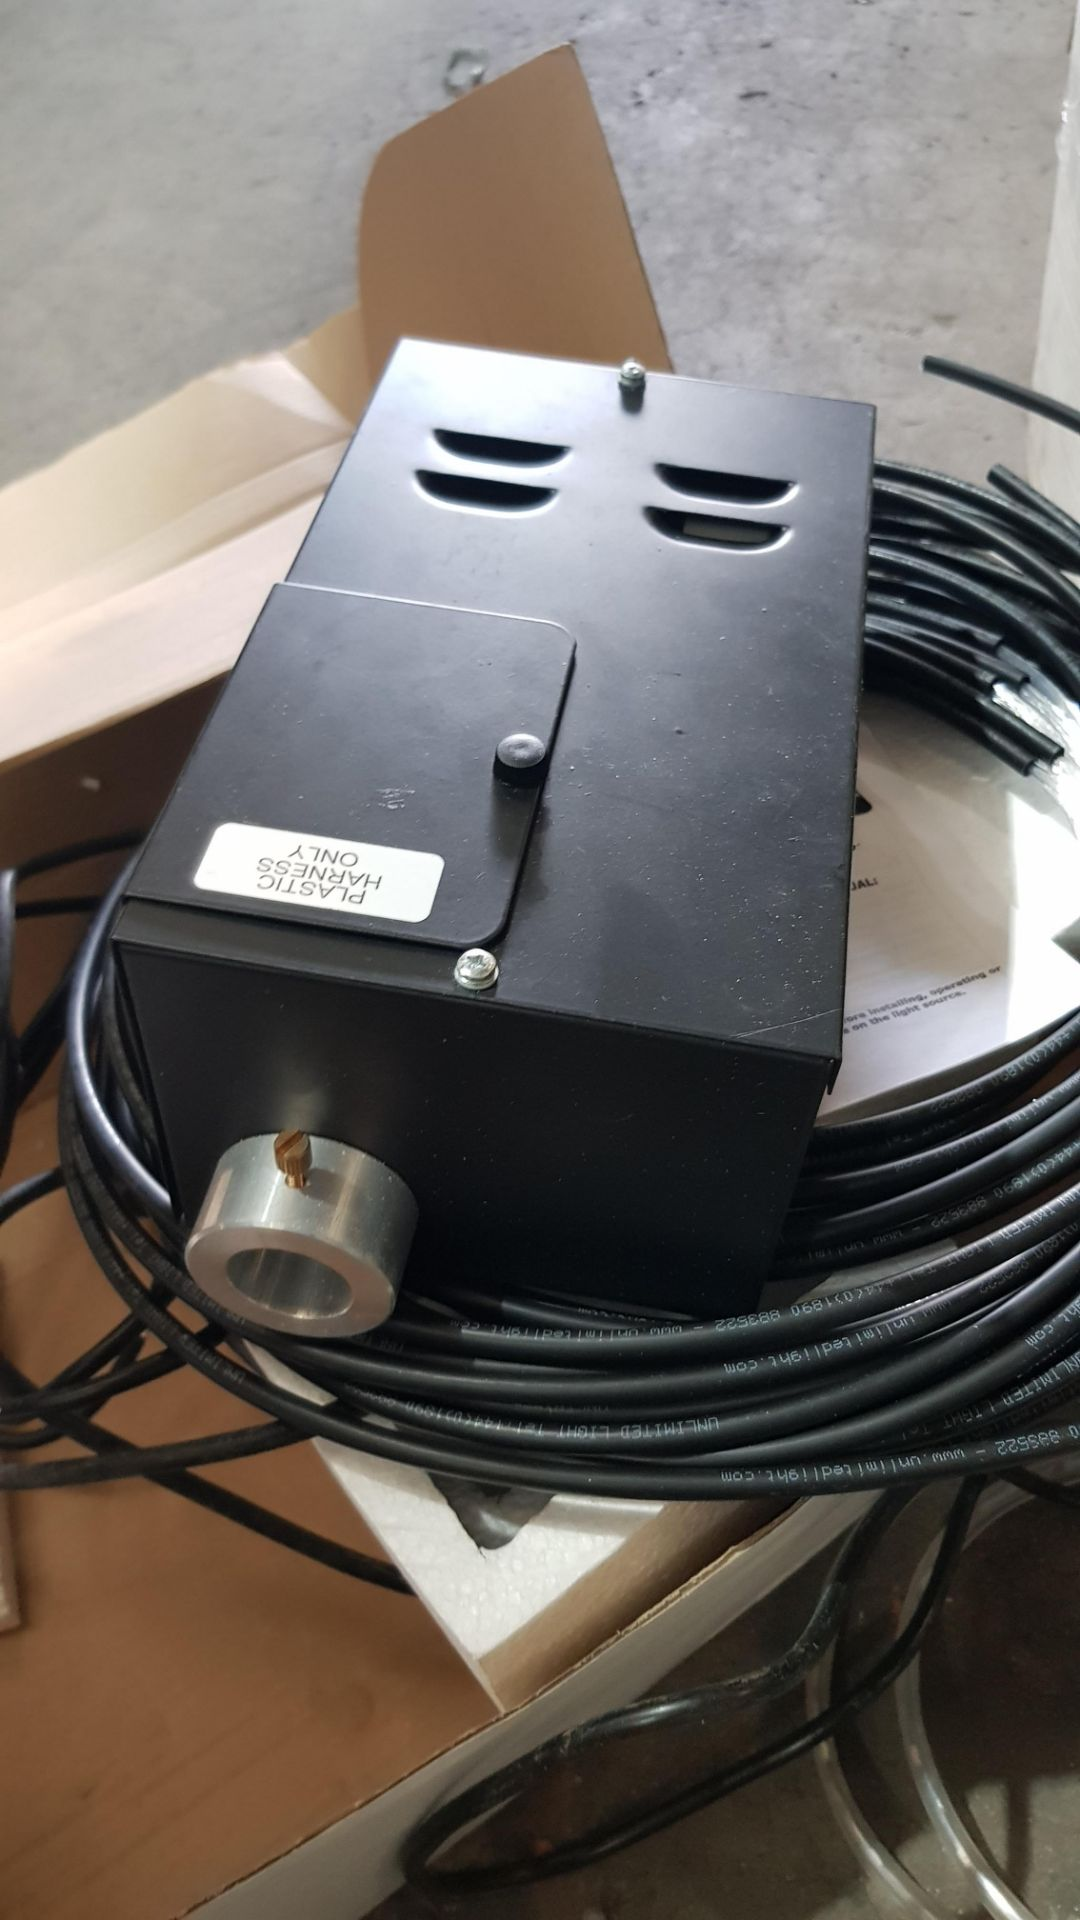 (3F) Fibre Optic / LED Lighting Lot. To Include 1x Optic Lighting InFloor Fibre Optic Lighting Kit. - Image 8 of 12